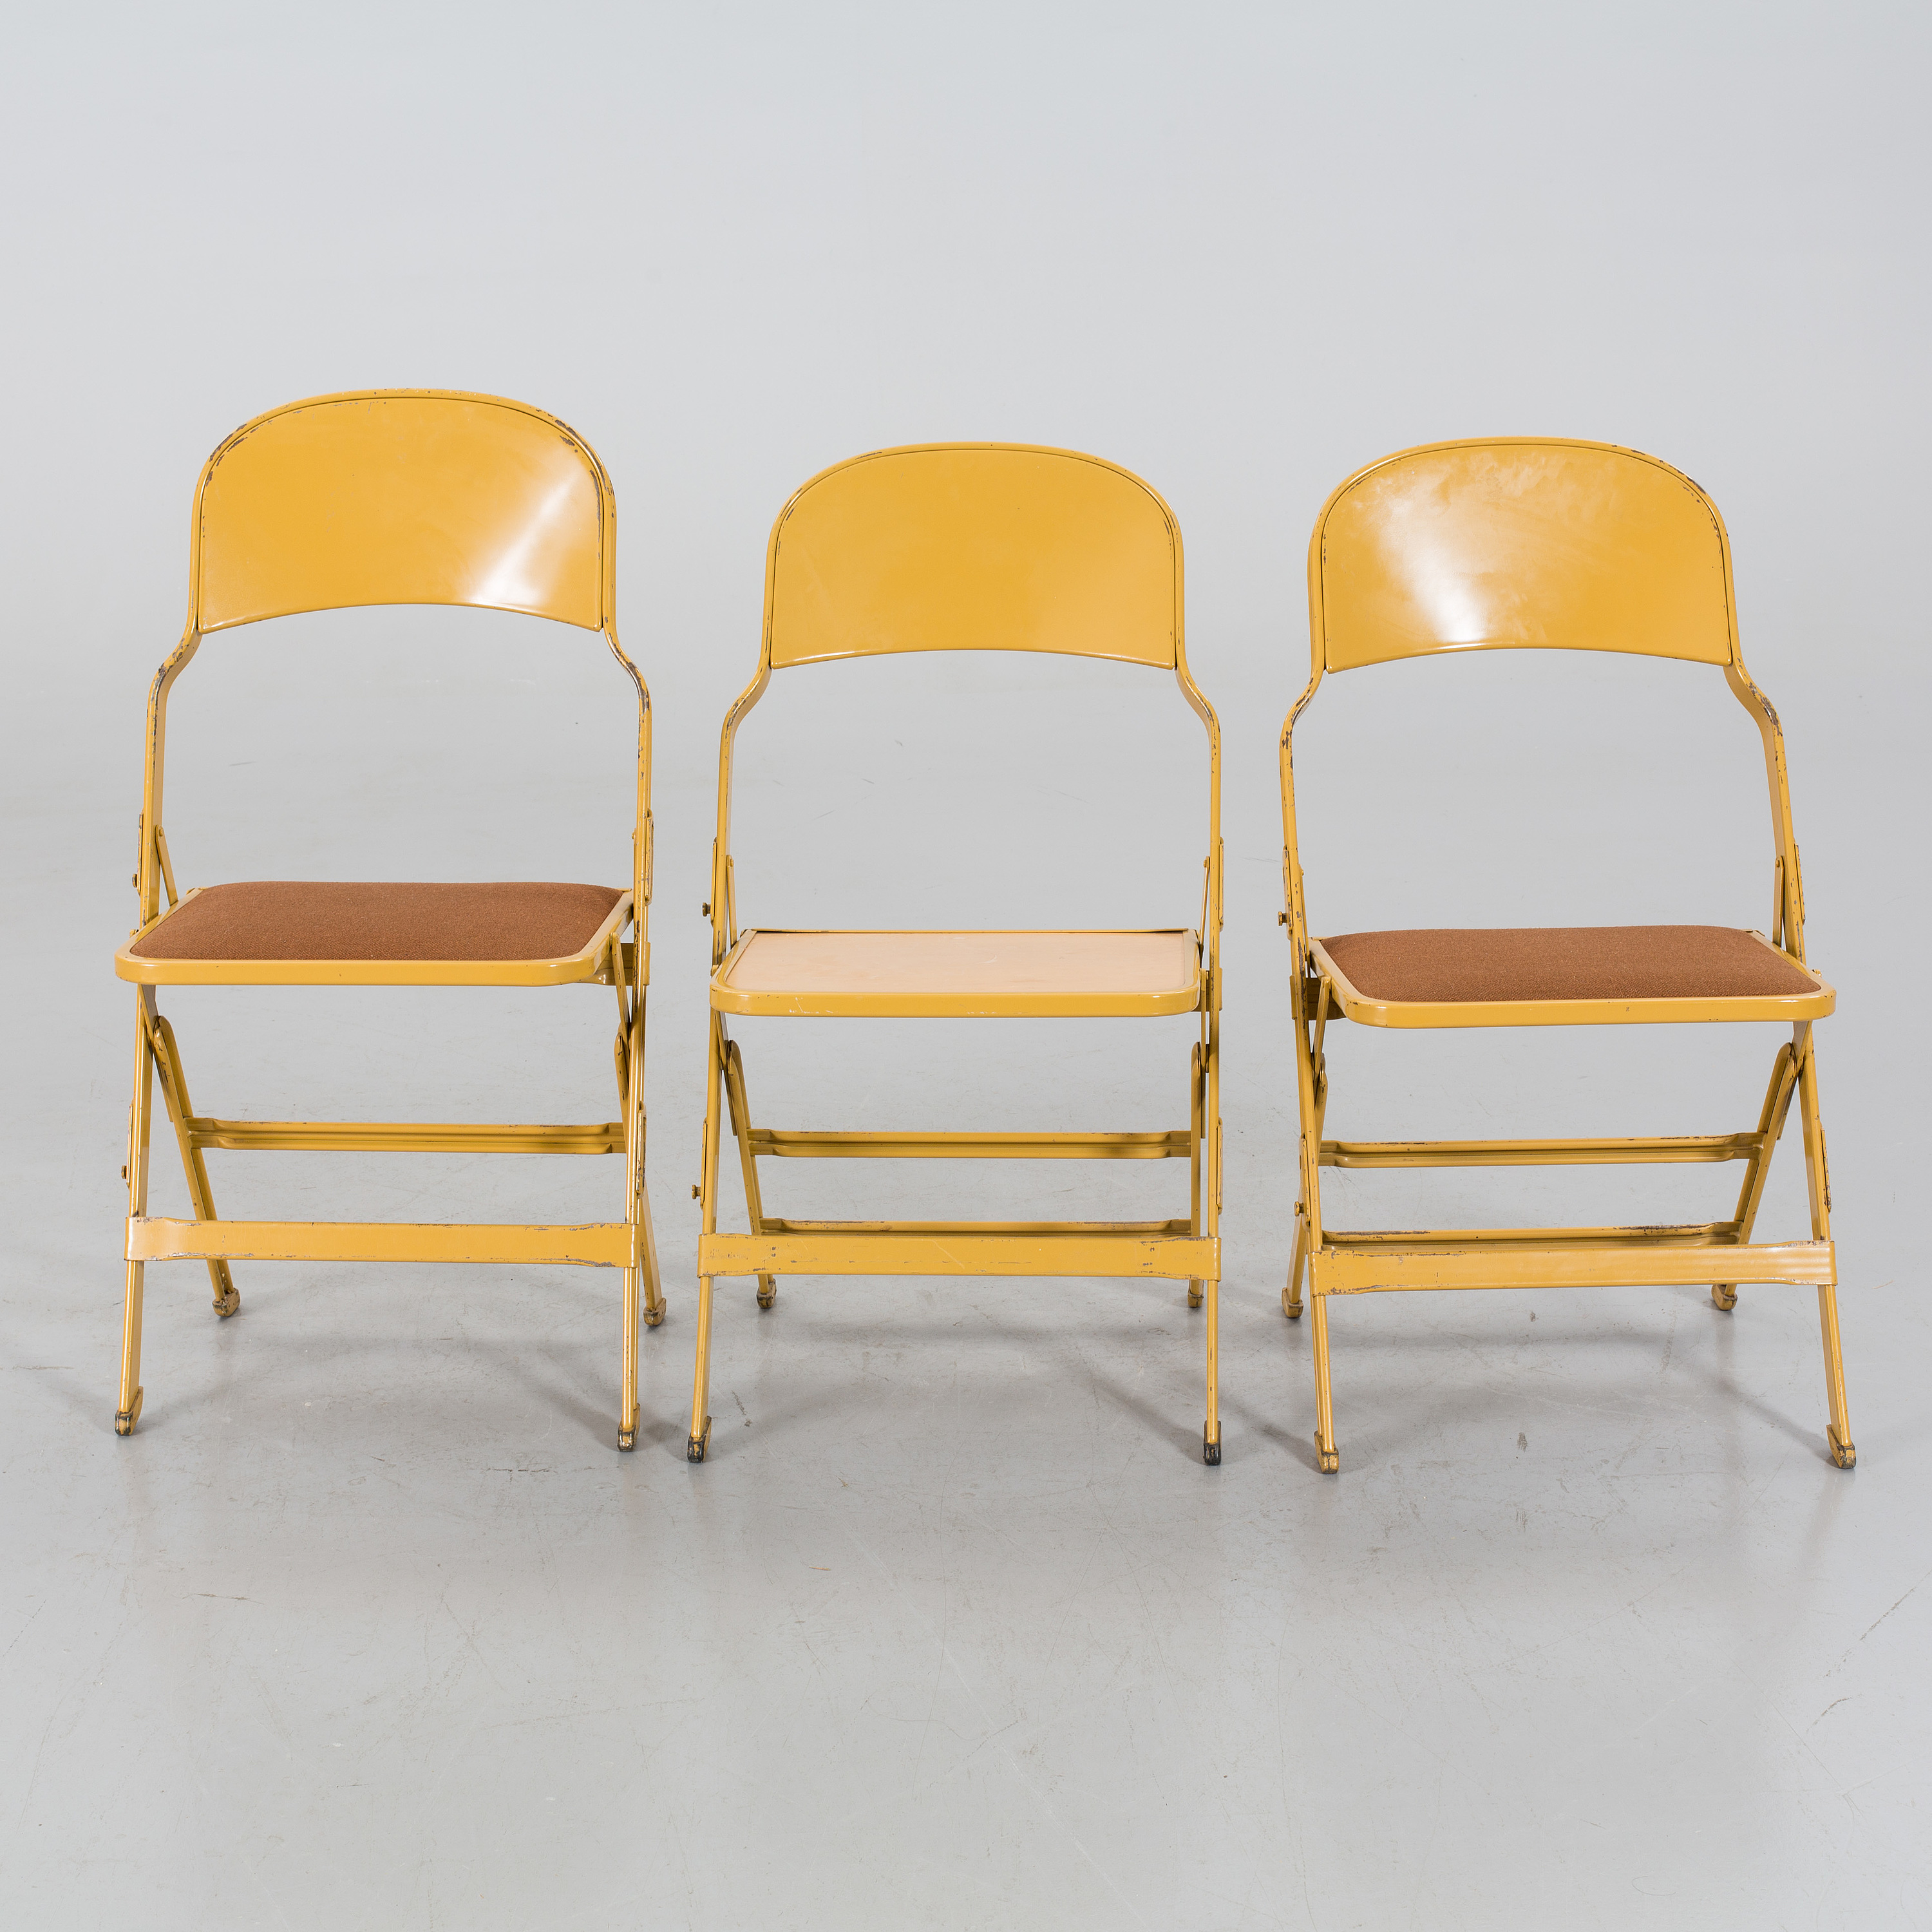 Wondrous A Set Of 3 Folding Chairs By Clarin Mfg Co Chicago Usa Bralicious Painted Fabric Chair Ideas Braliciousco